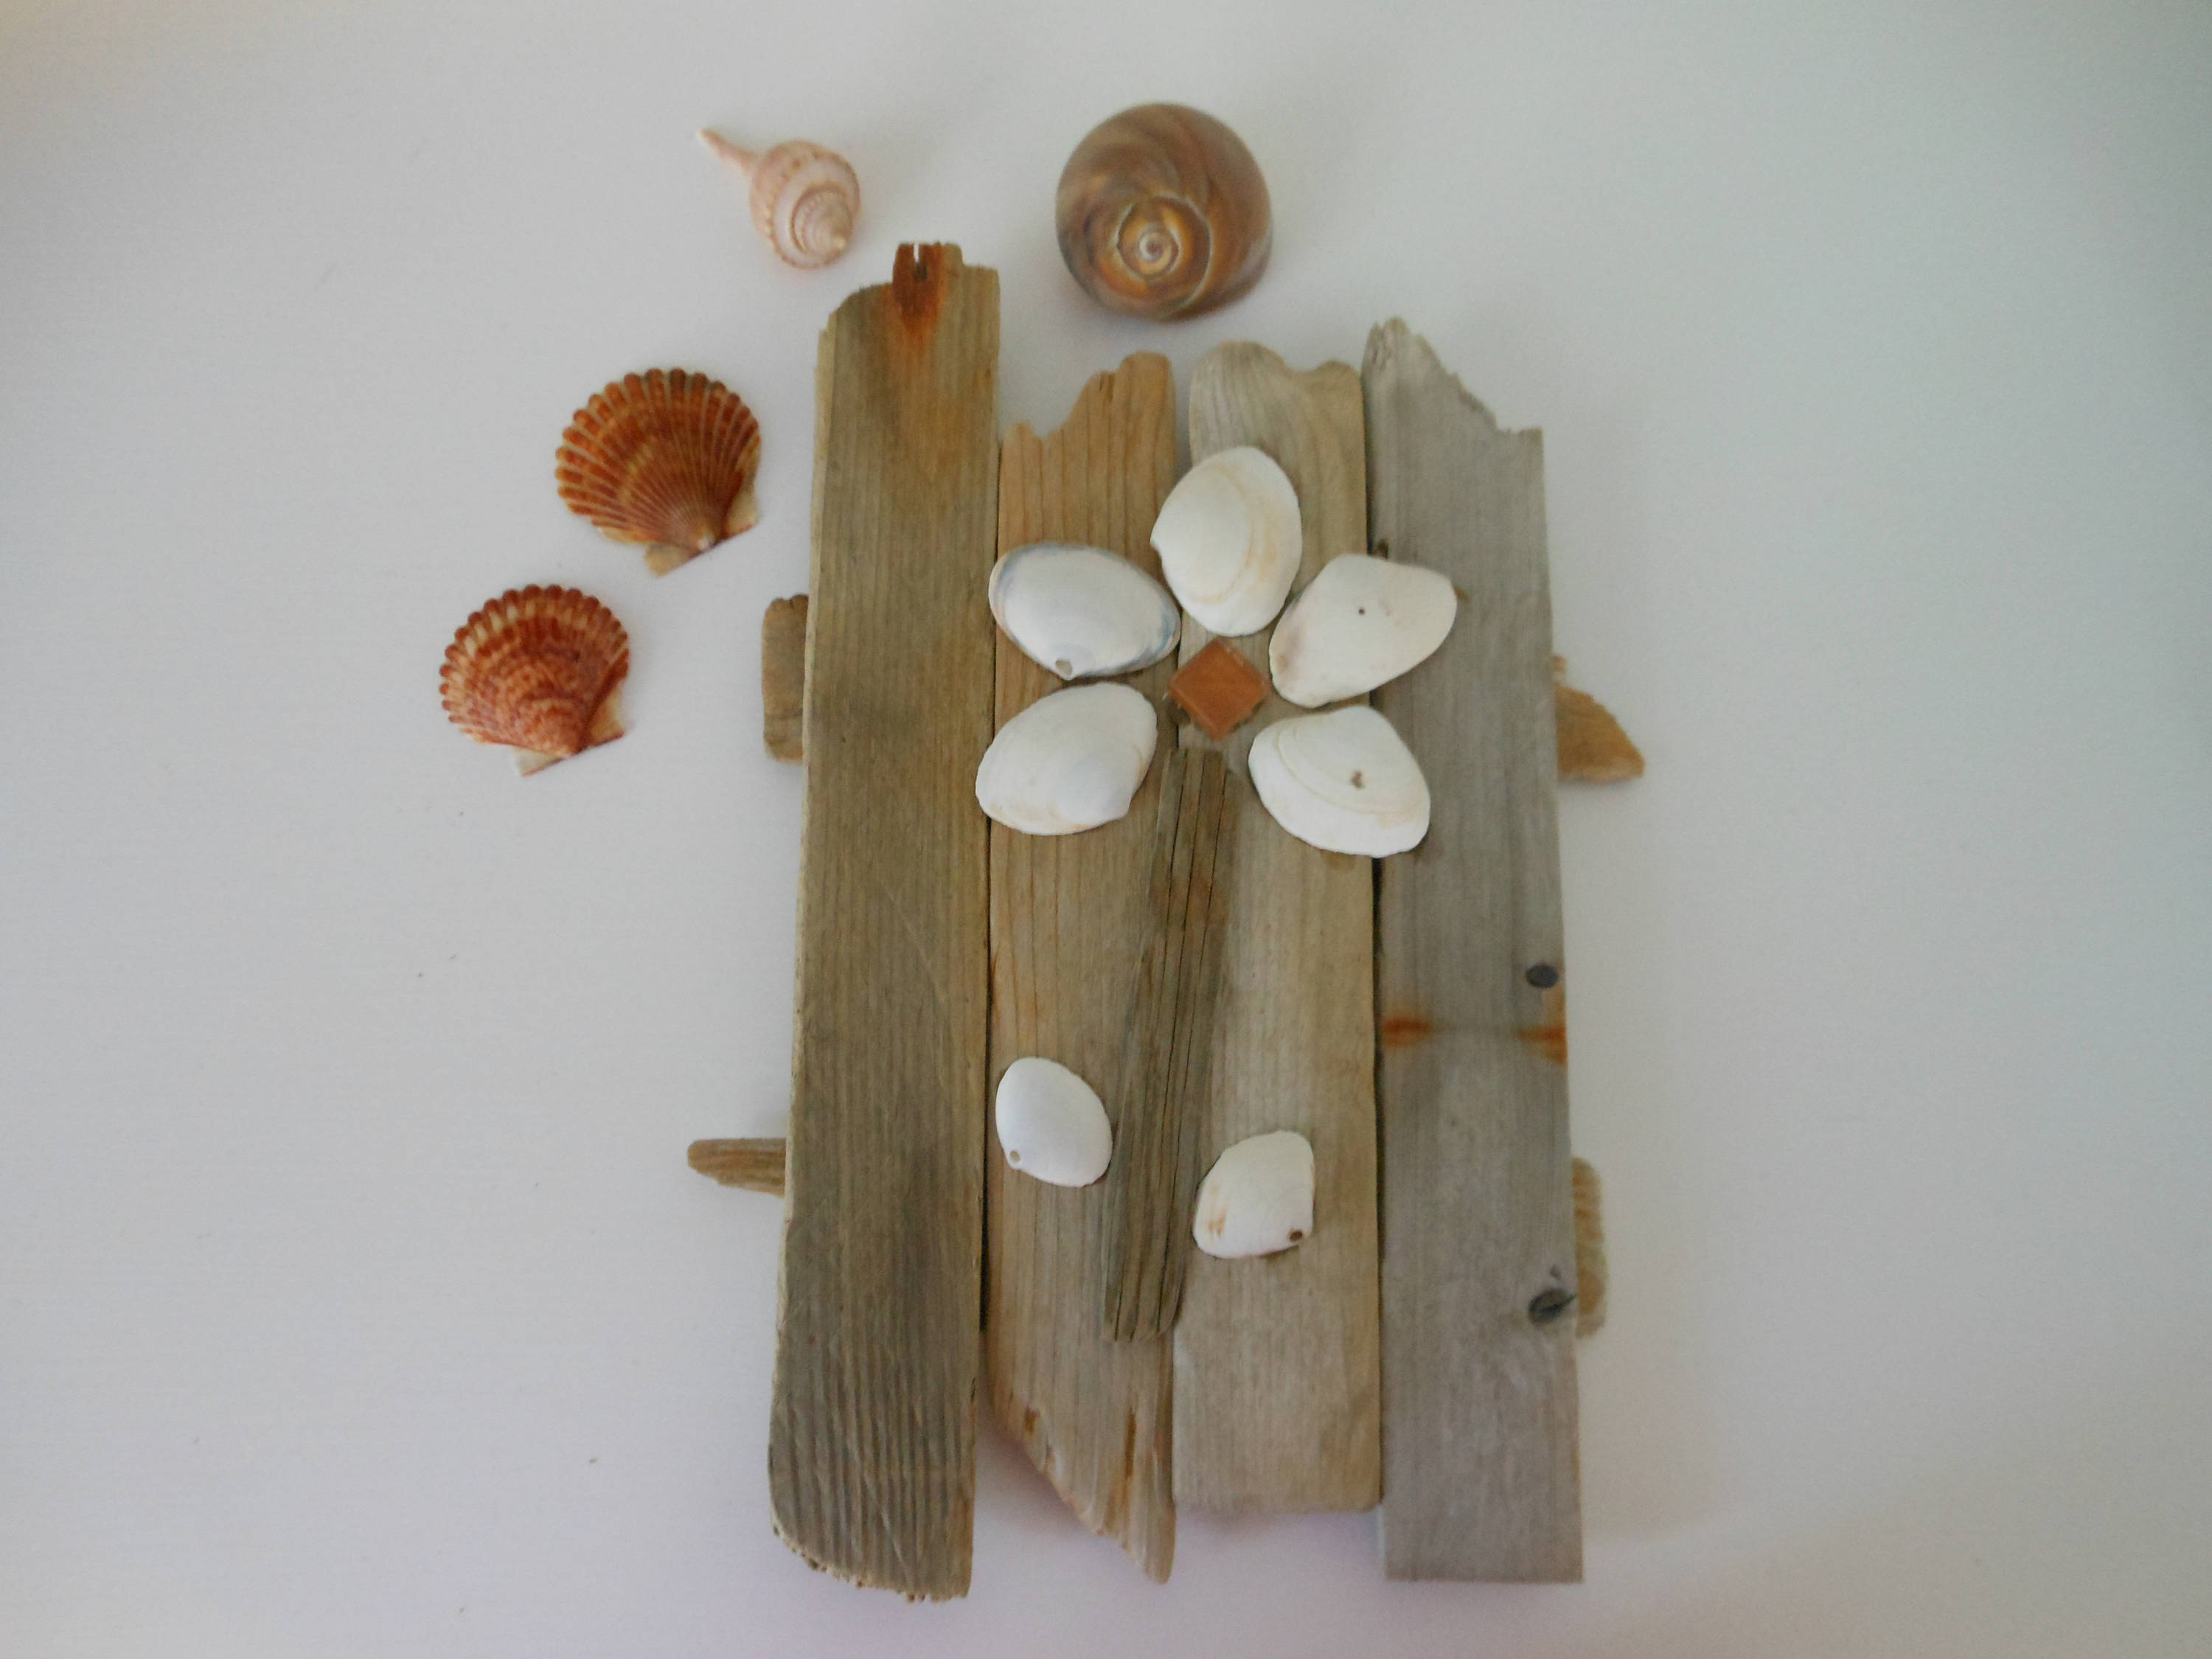 Etsy Throughout Latest Tree Shell Leaves Sculpture Wall Decor (View 3 of 20)